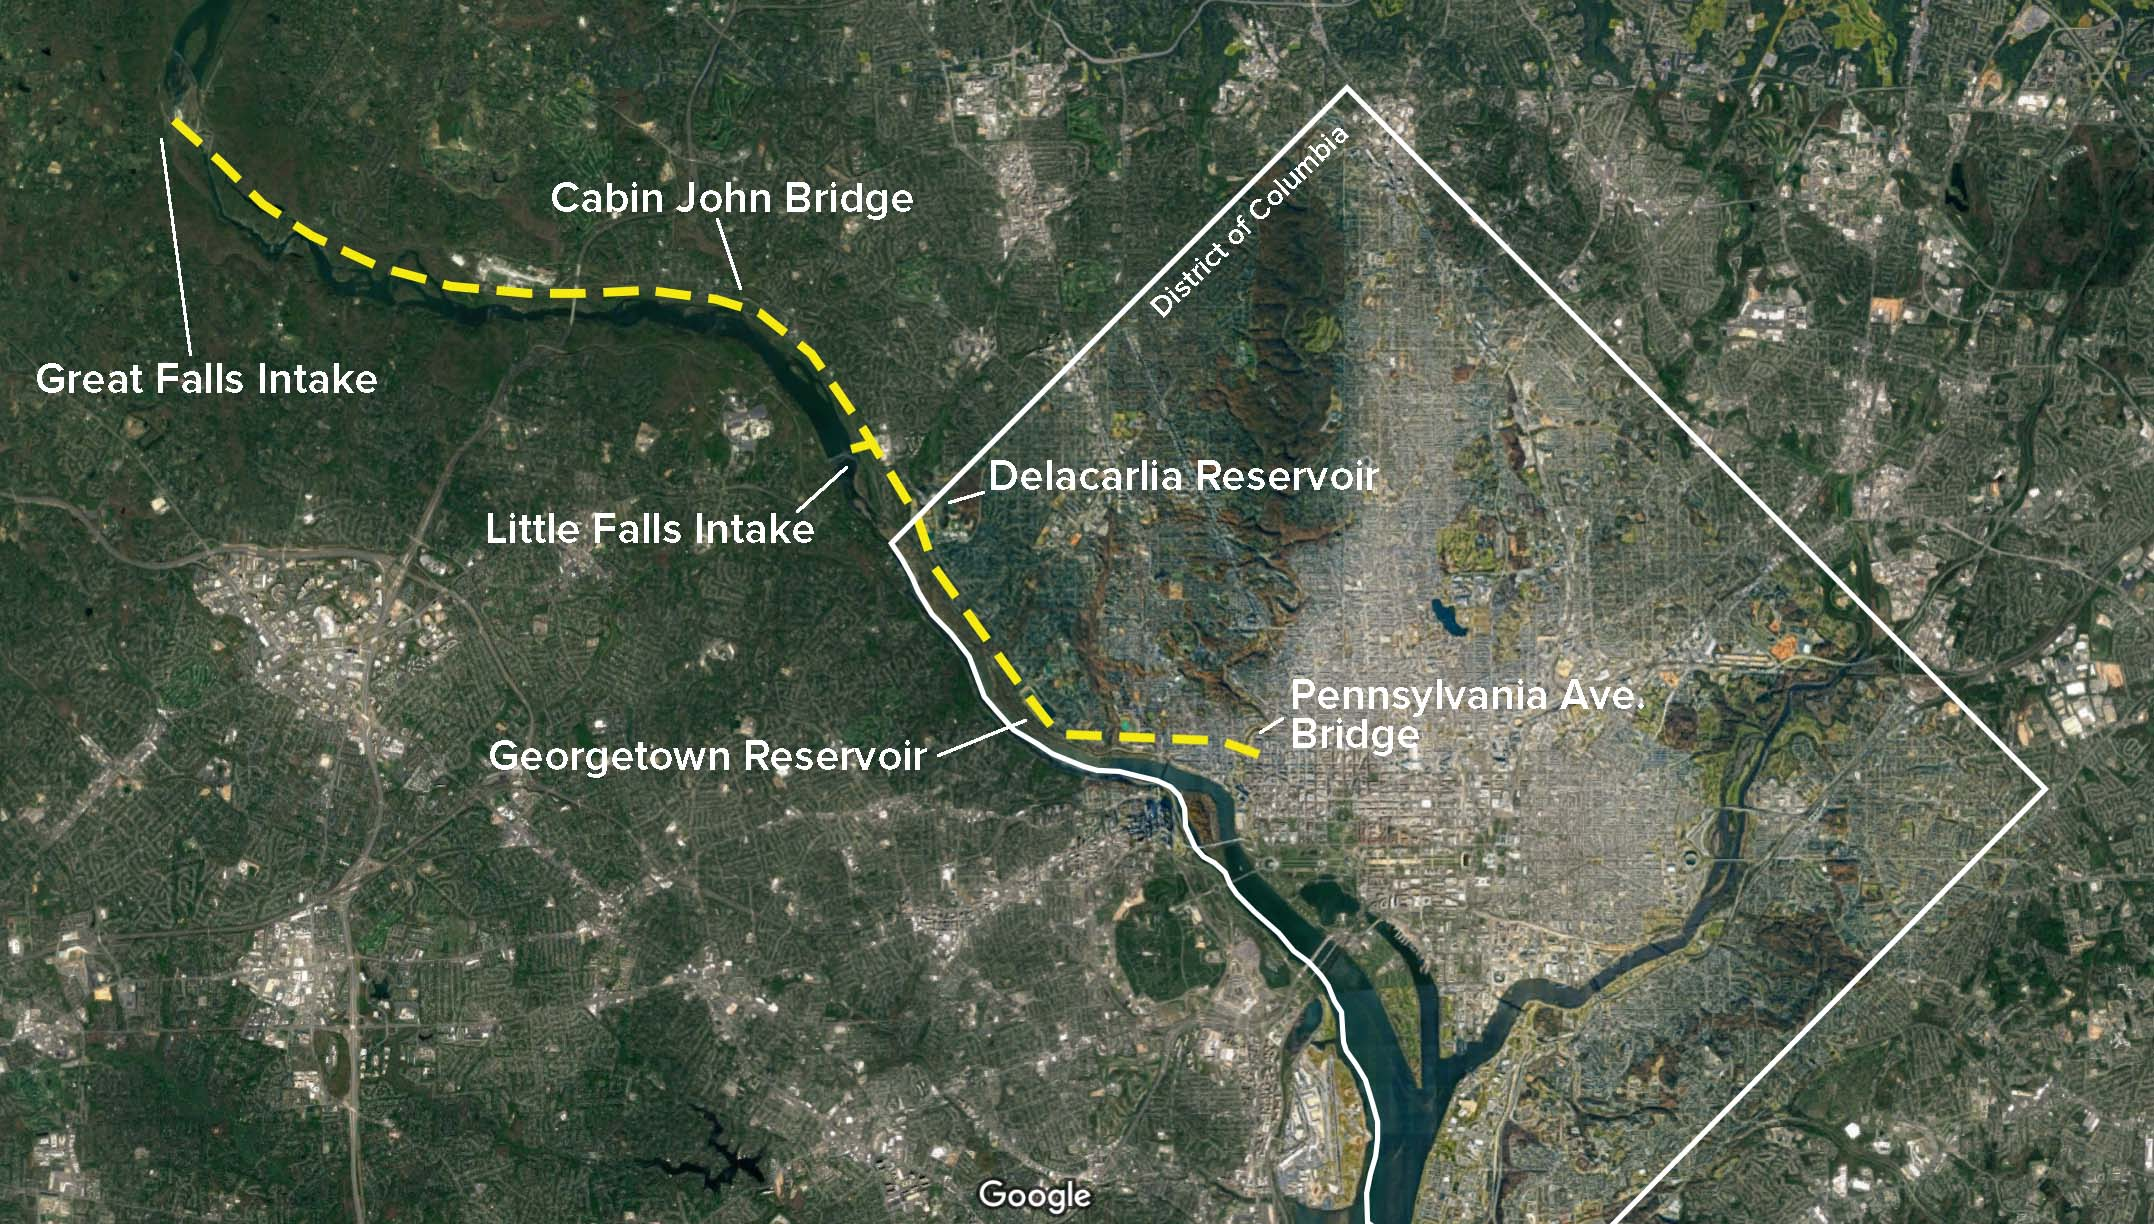 Tracing the route of the Washington Aqueduct. Google Earth image